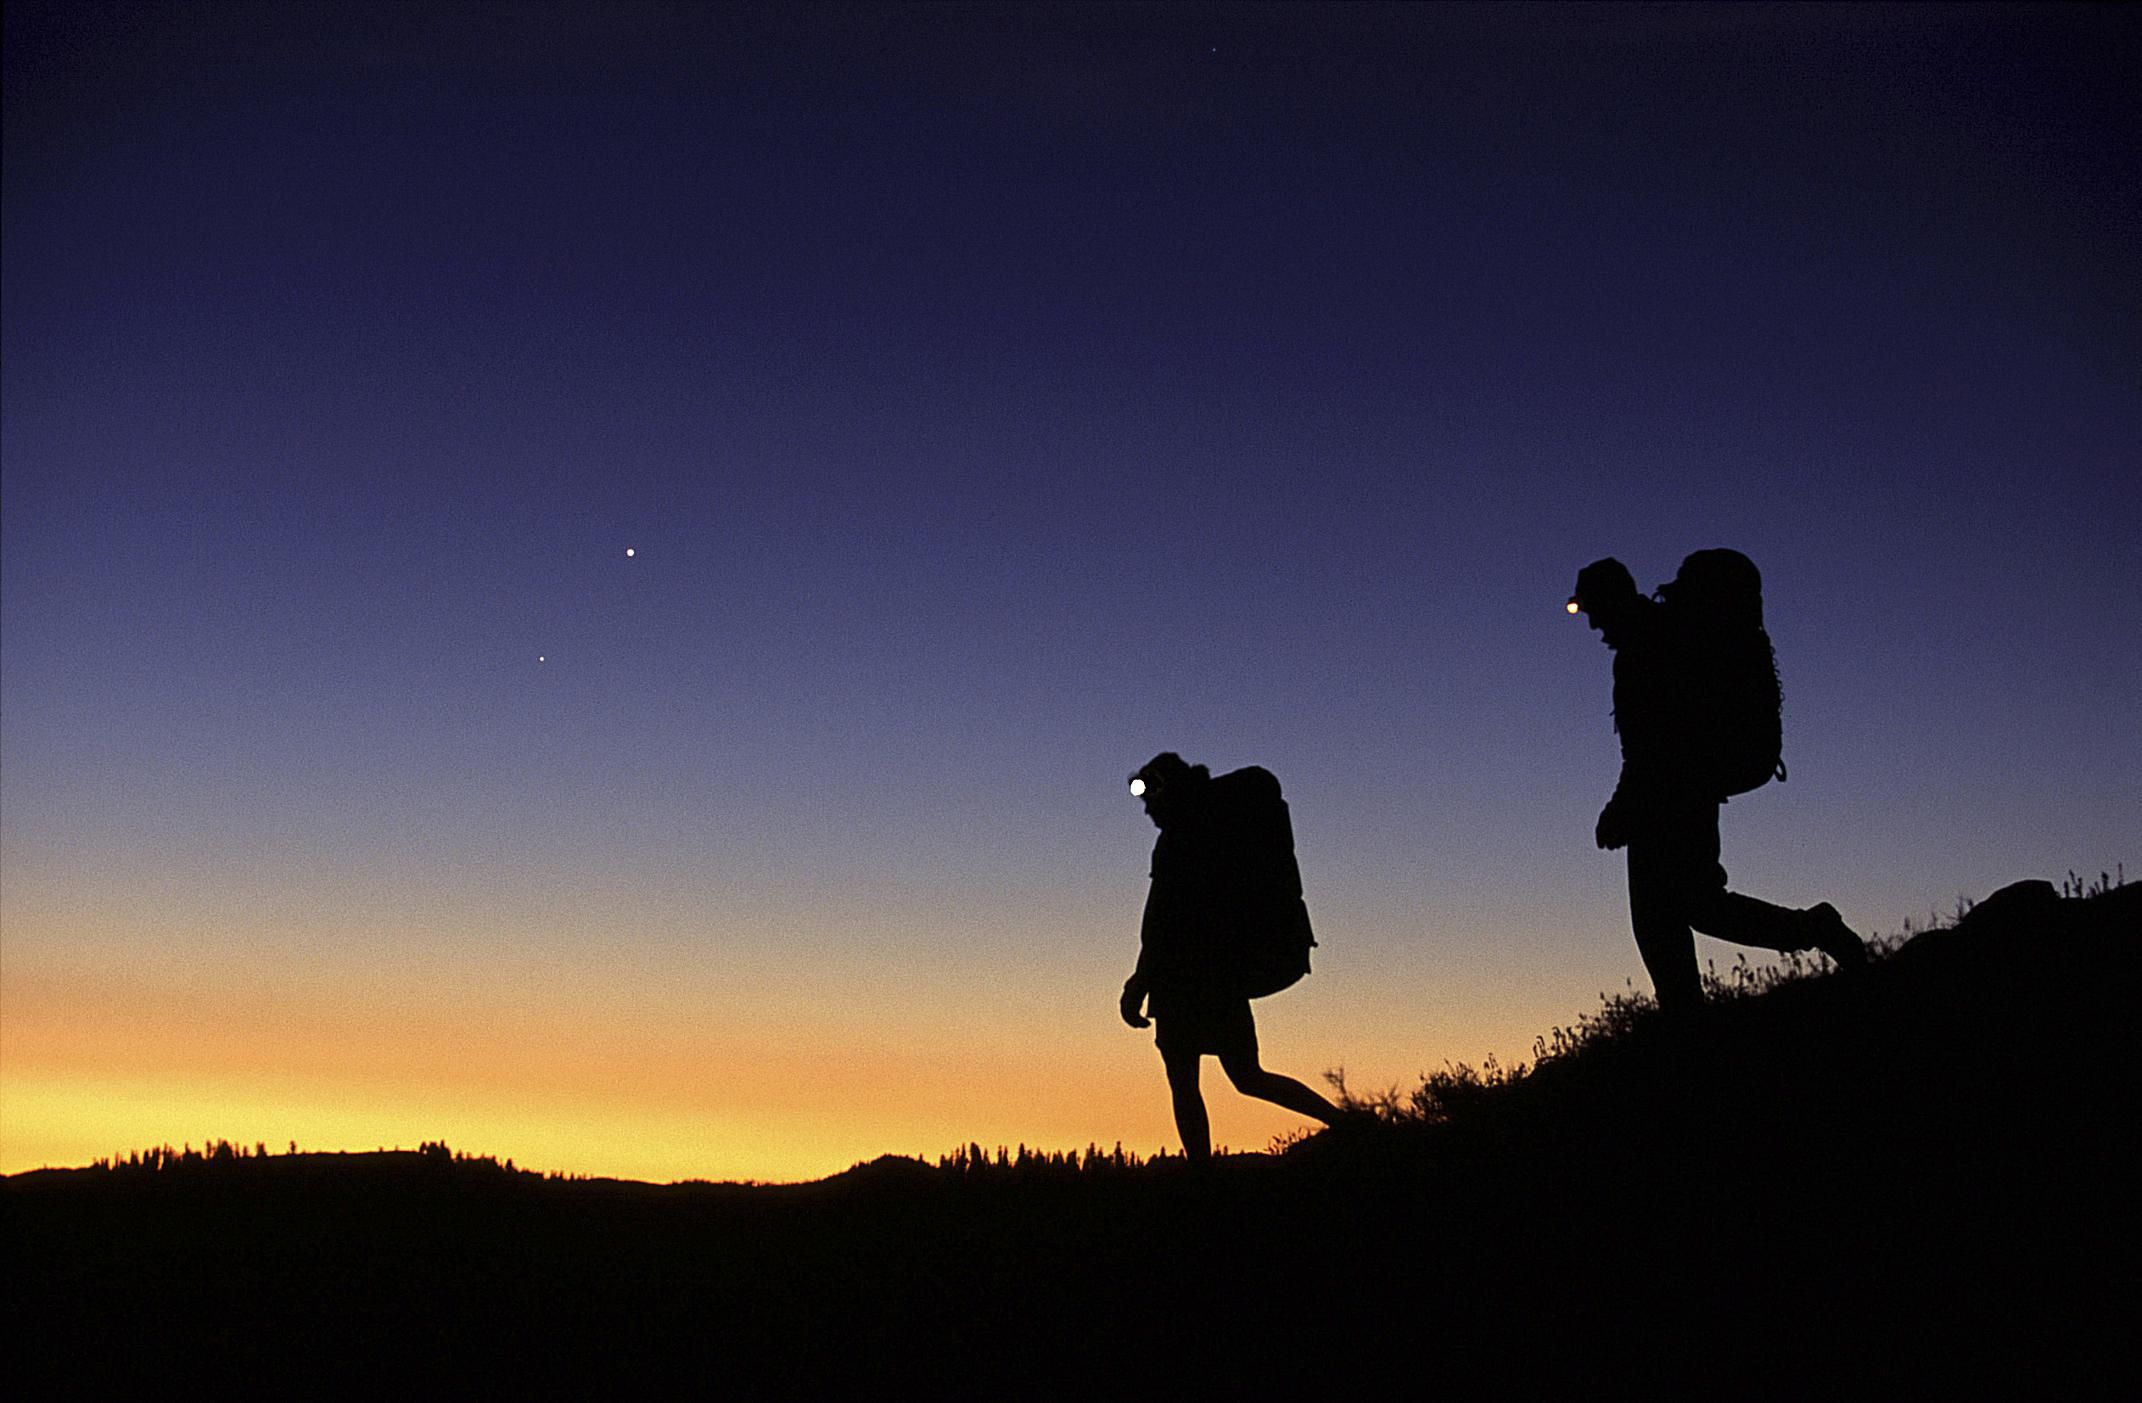 hikers-and-headlamps-at-night-getty-58b987773df78c353cdfa5b8.jpg